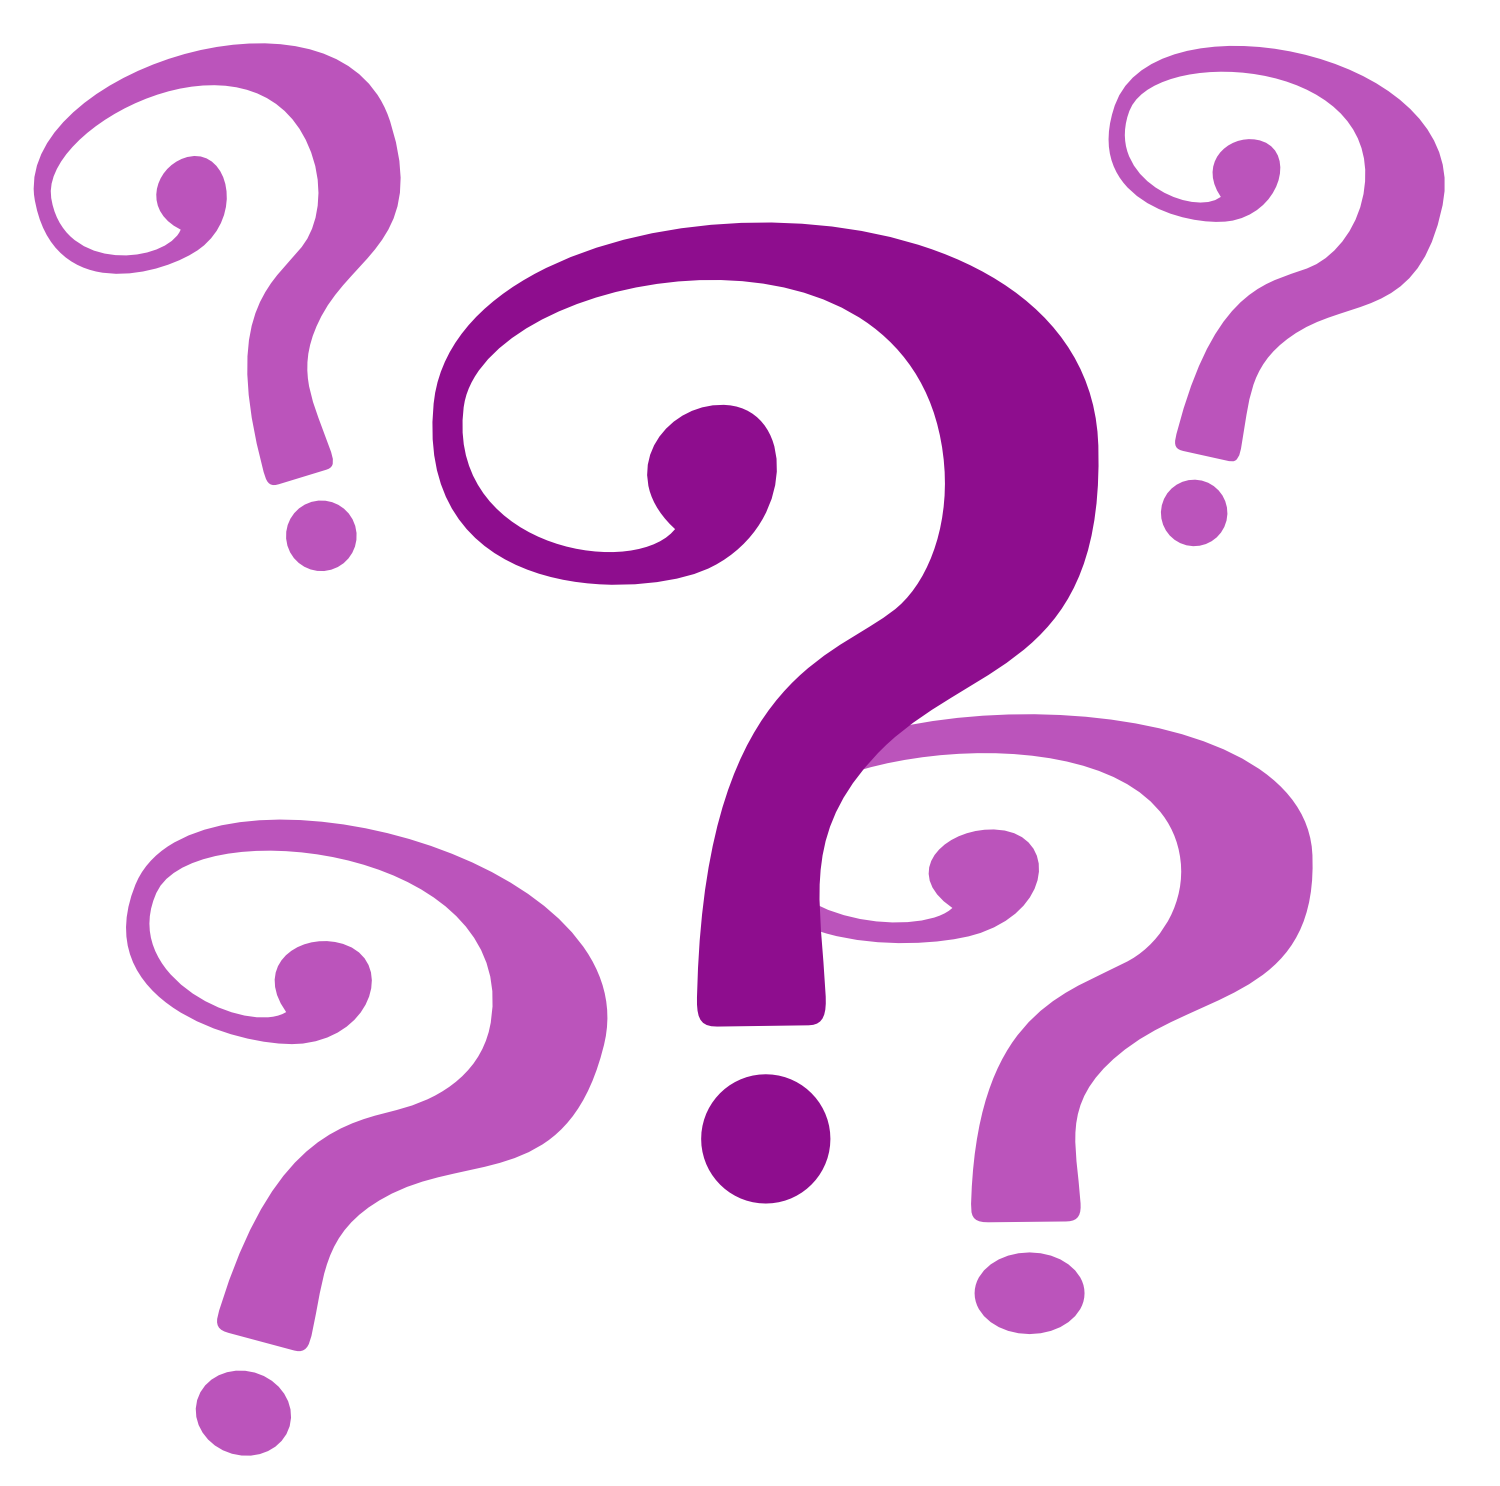 Clipart question marks image library library Free Question Mark, Download Free Clip Art, Free Clip Art on Clipart ... image library library